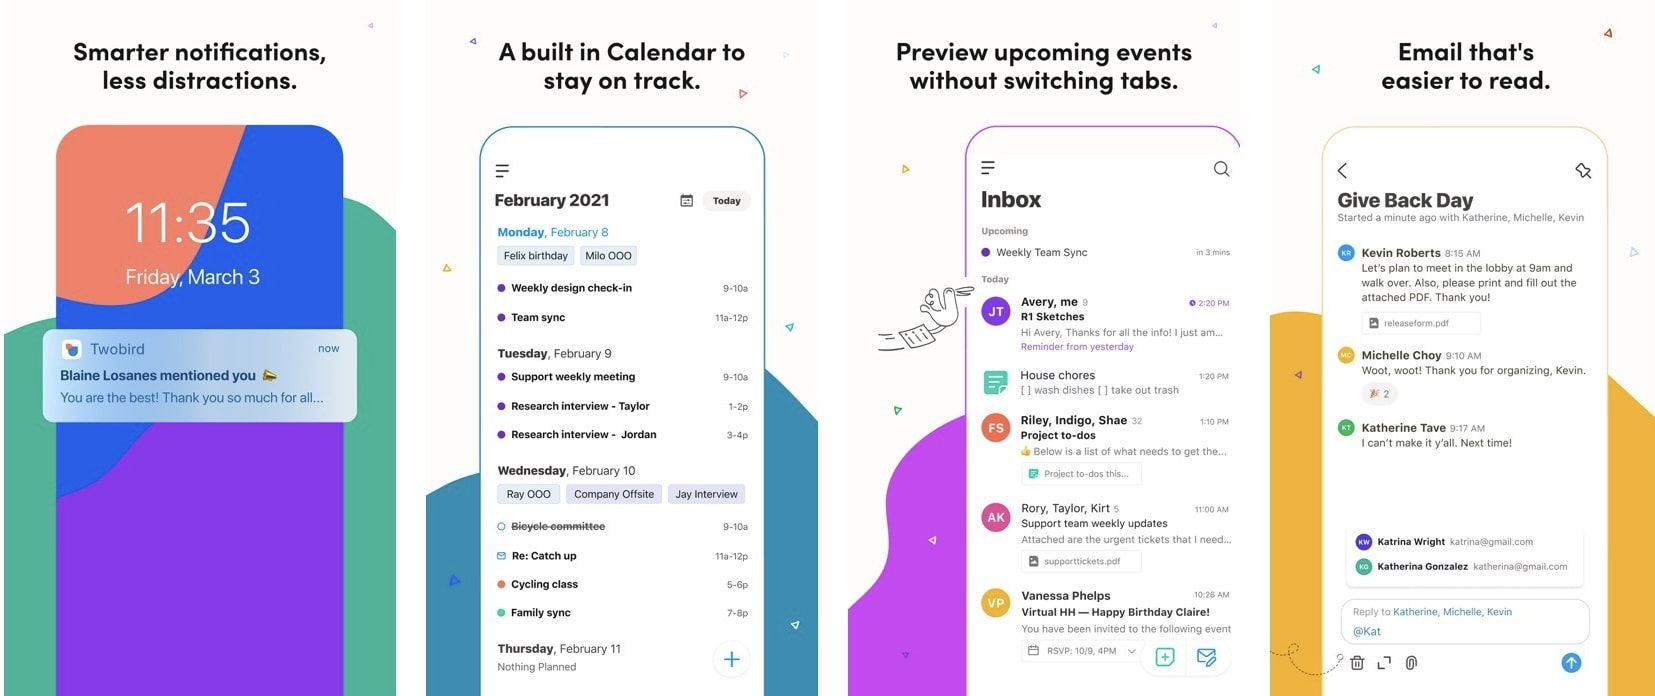 Twobird helps simplify email and note taking in a unified experience